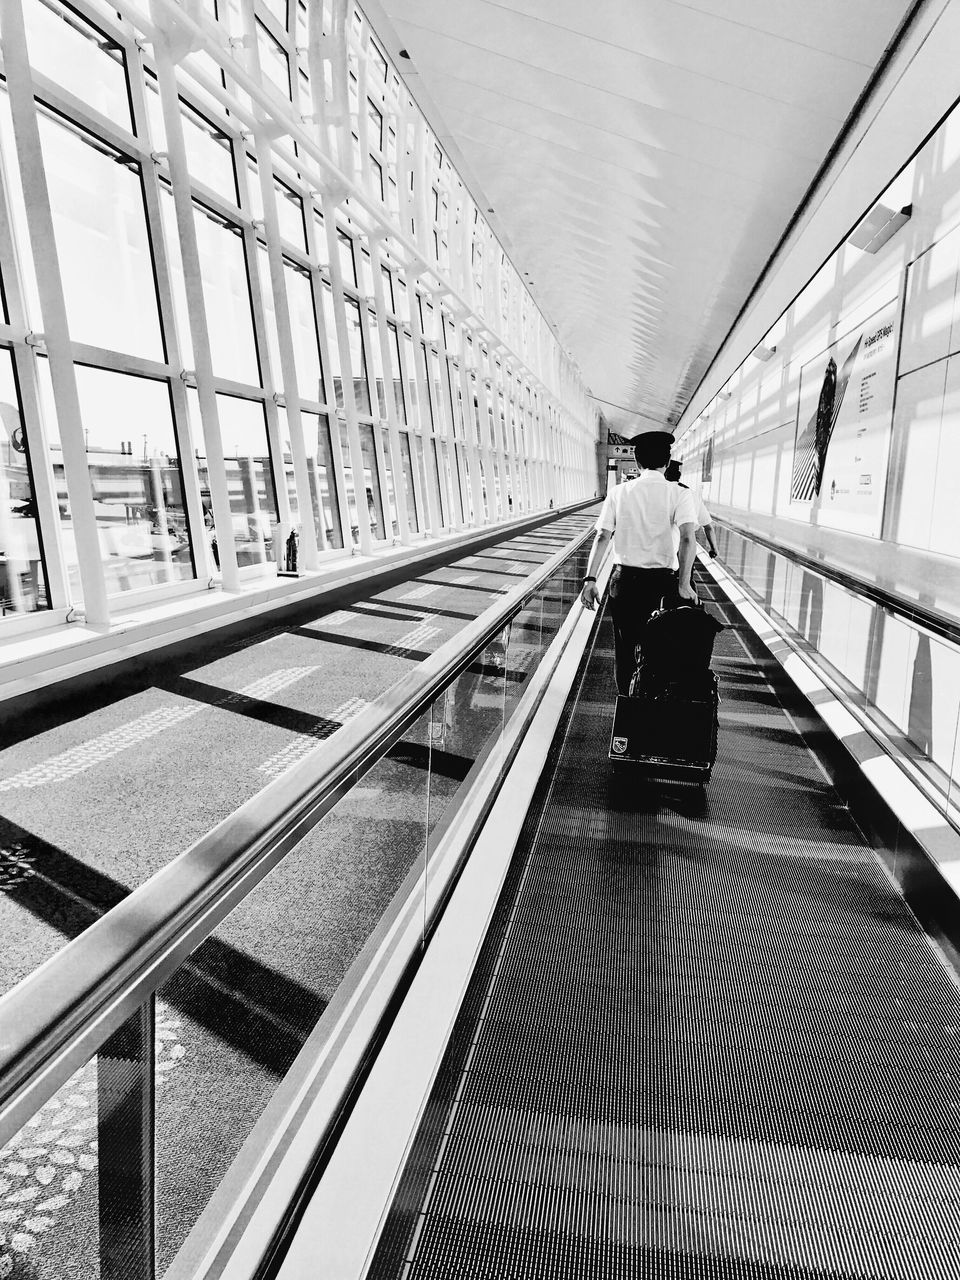 rear view, real people, indoors, architecture, walking, full length, transportation, one person, built structure, men, passenger, women, luggage, modern, airport, journey, lifestyles, technology, futuristic, day, adult, people